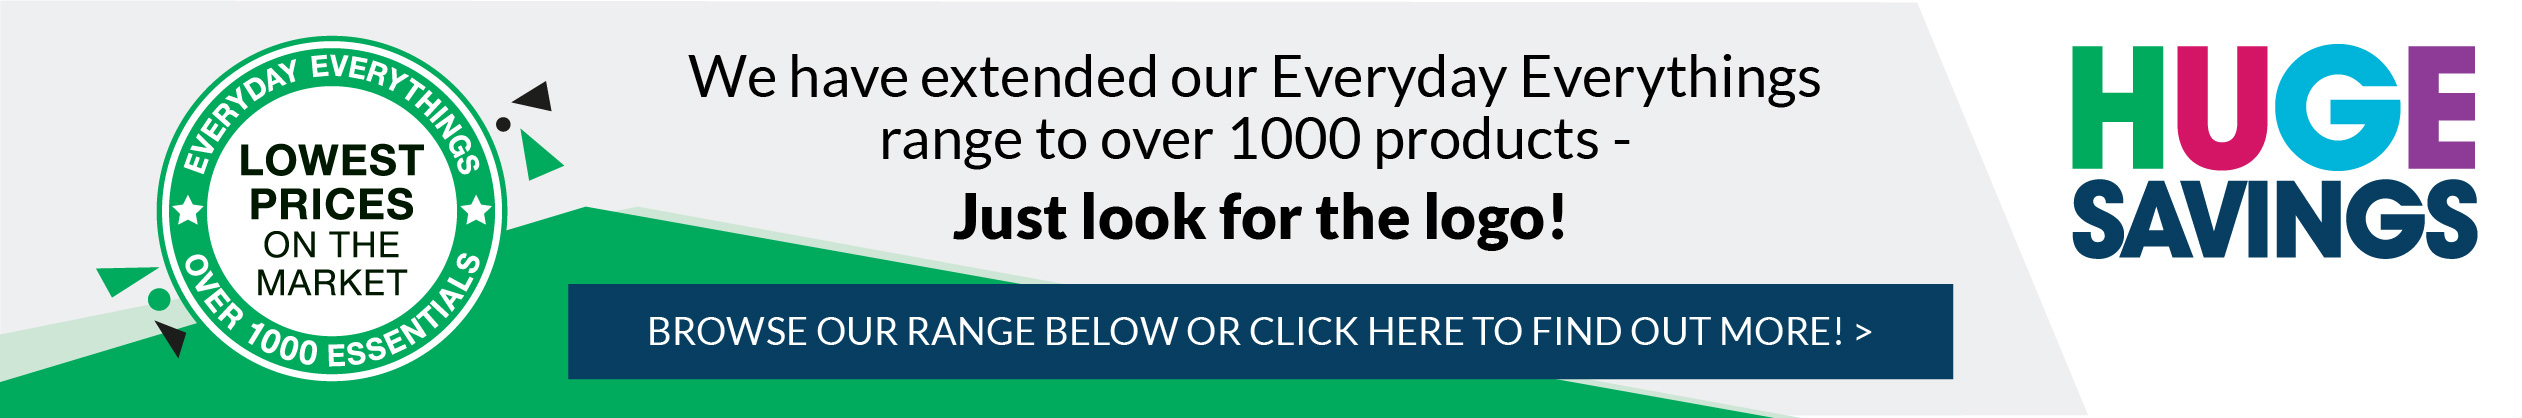 We have extended our everyday everythings range to over 1000 products! Shop now!